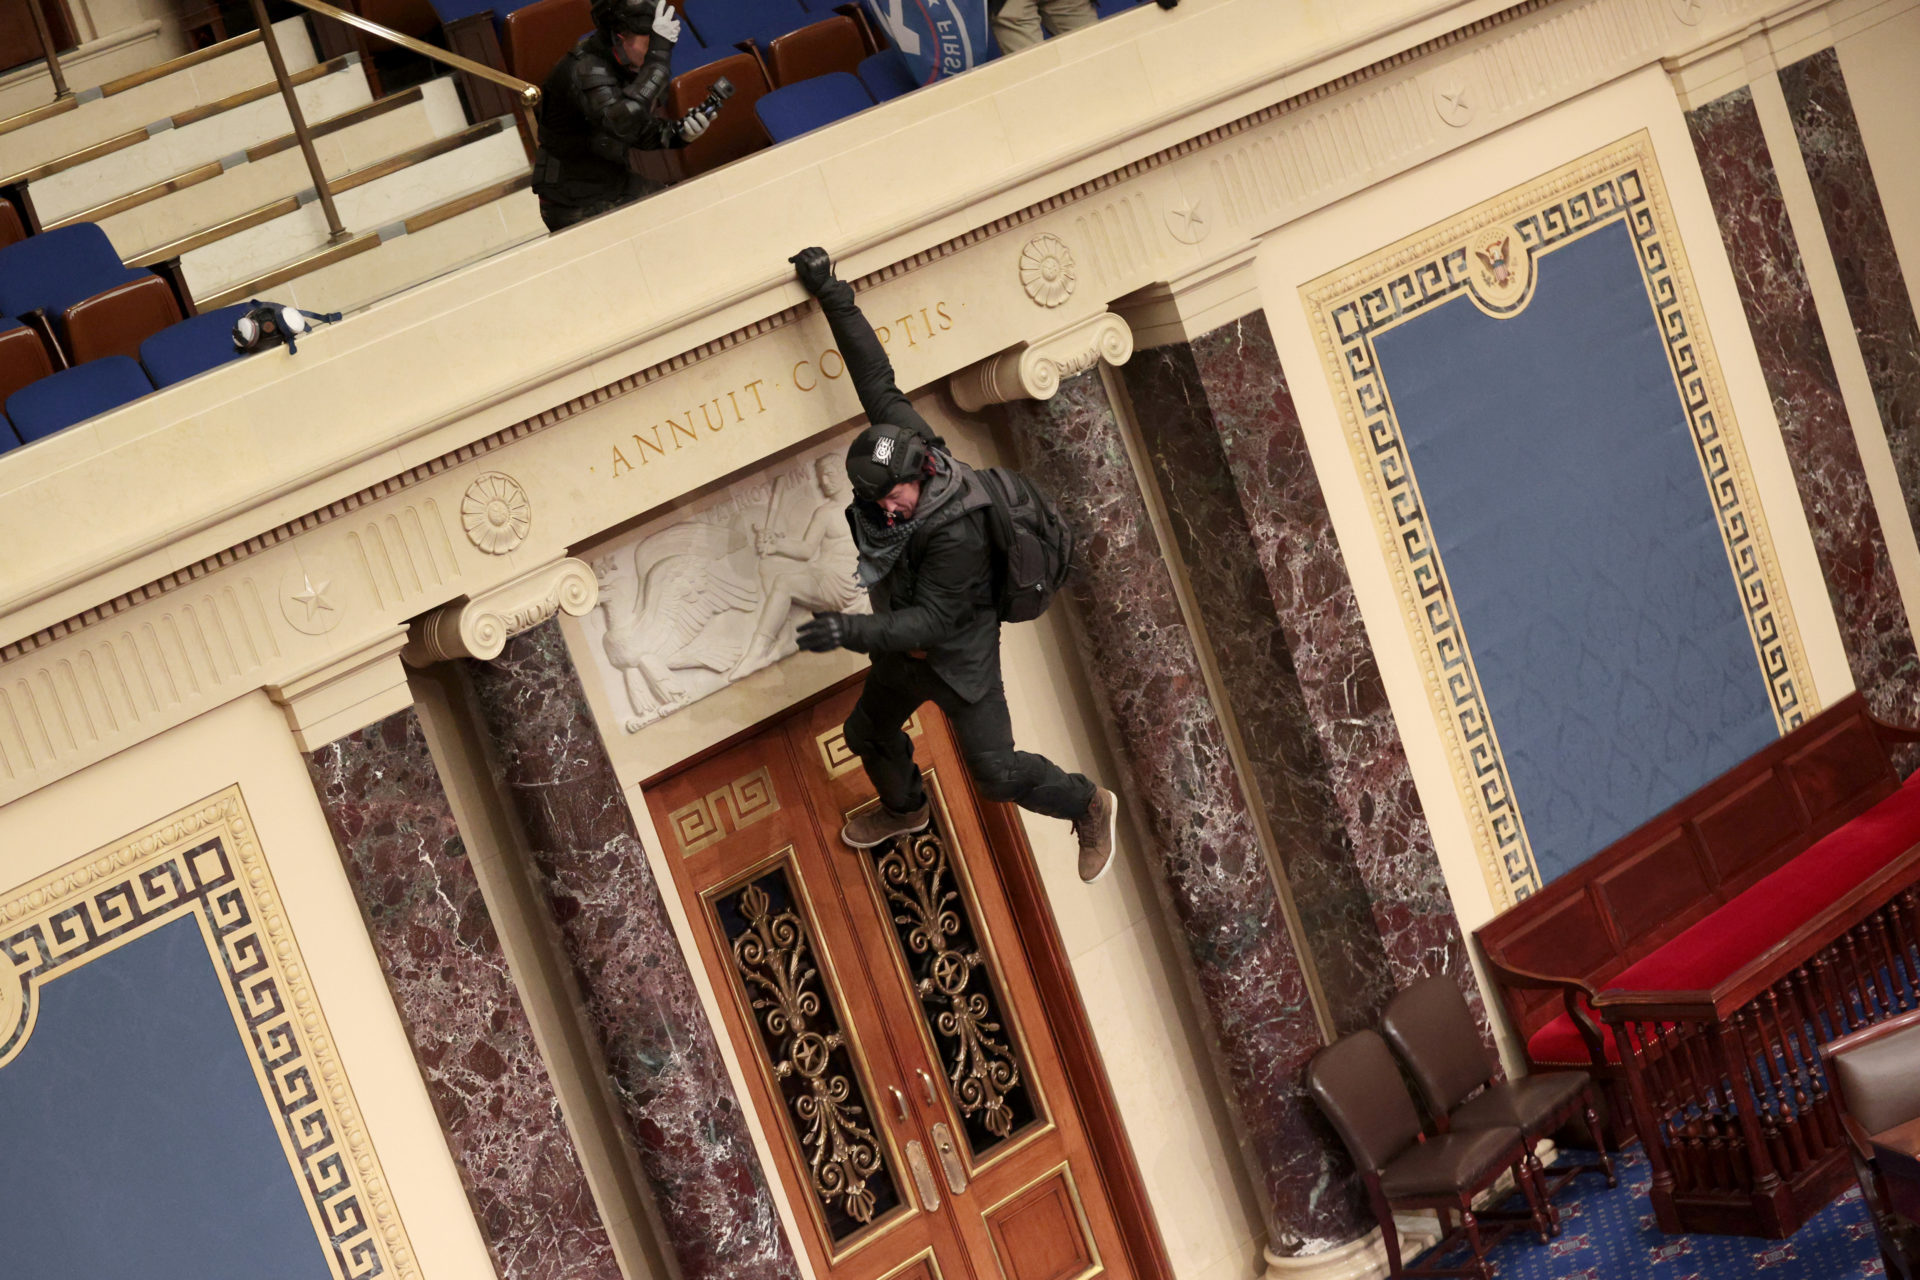 A protester is seen hanging from the balcony in the Senate Chamber. (Win McNamee/Getty Images)